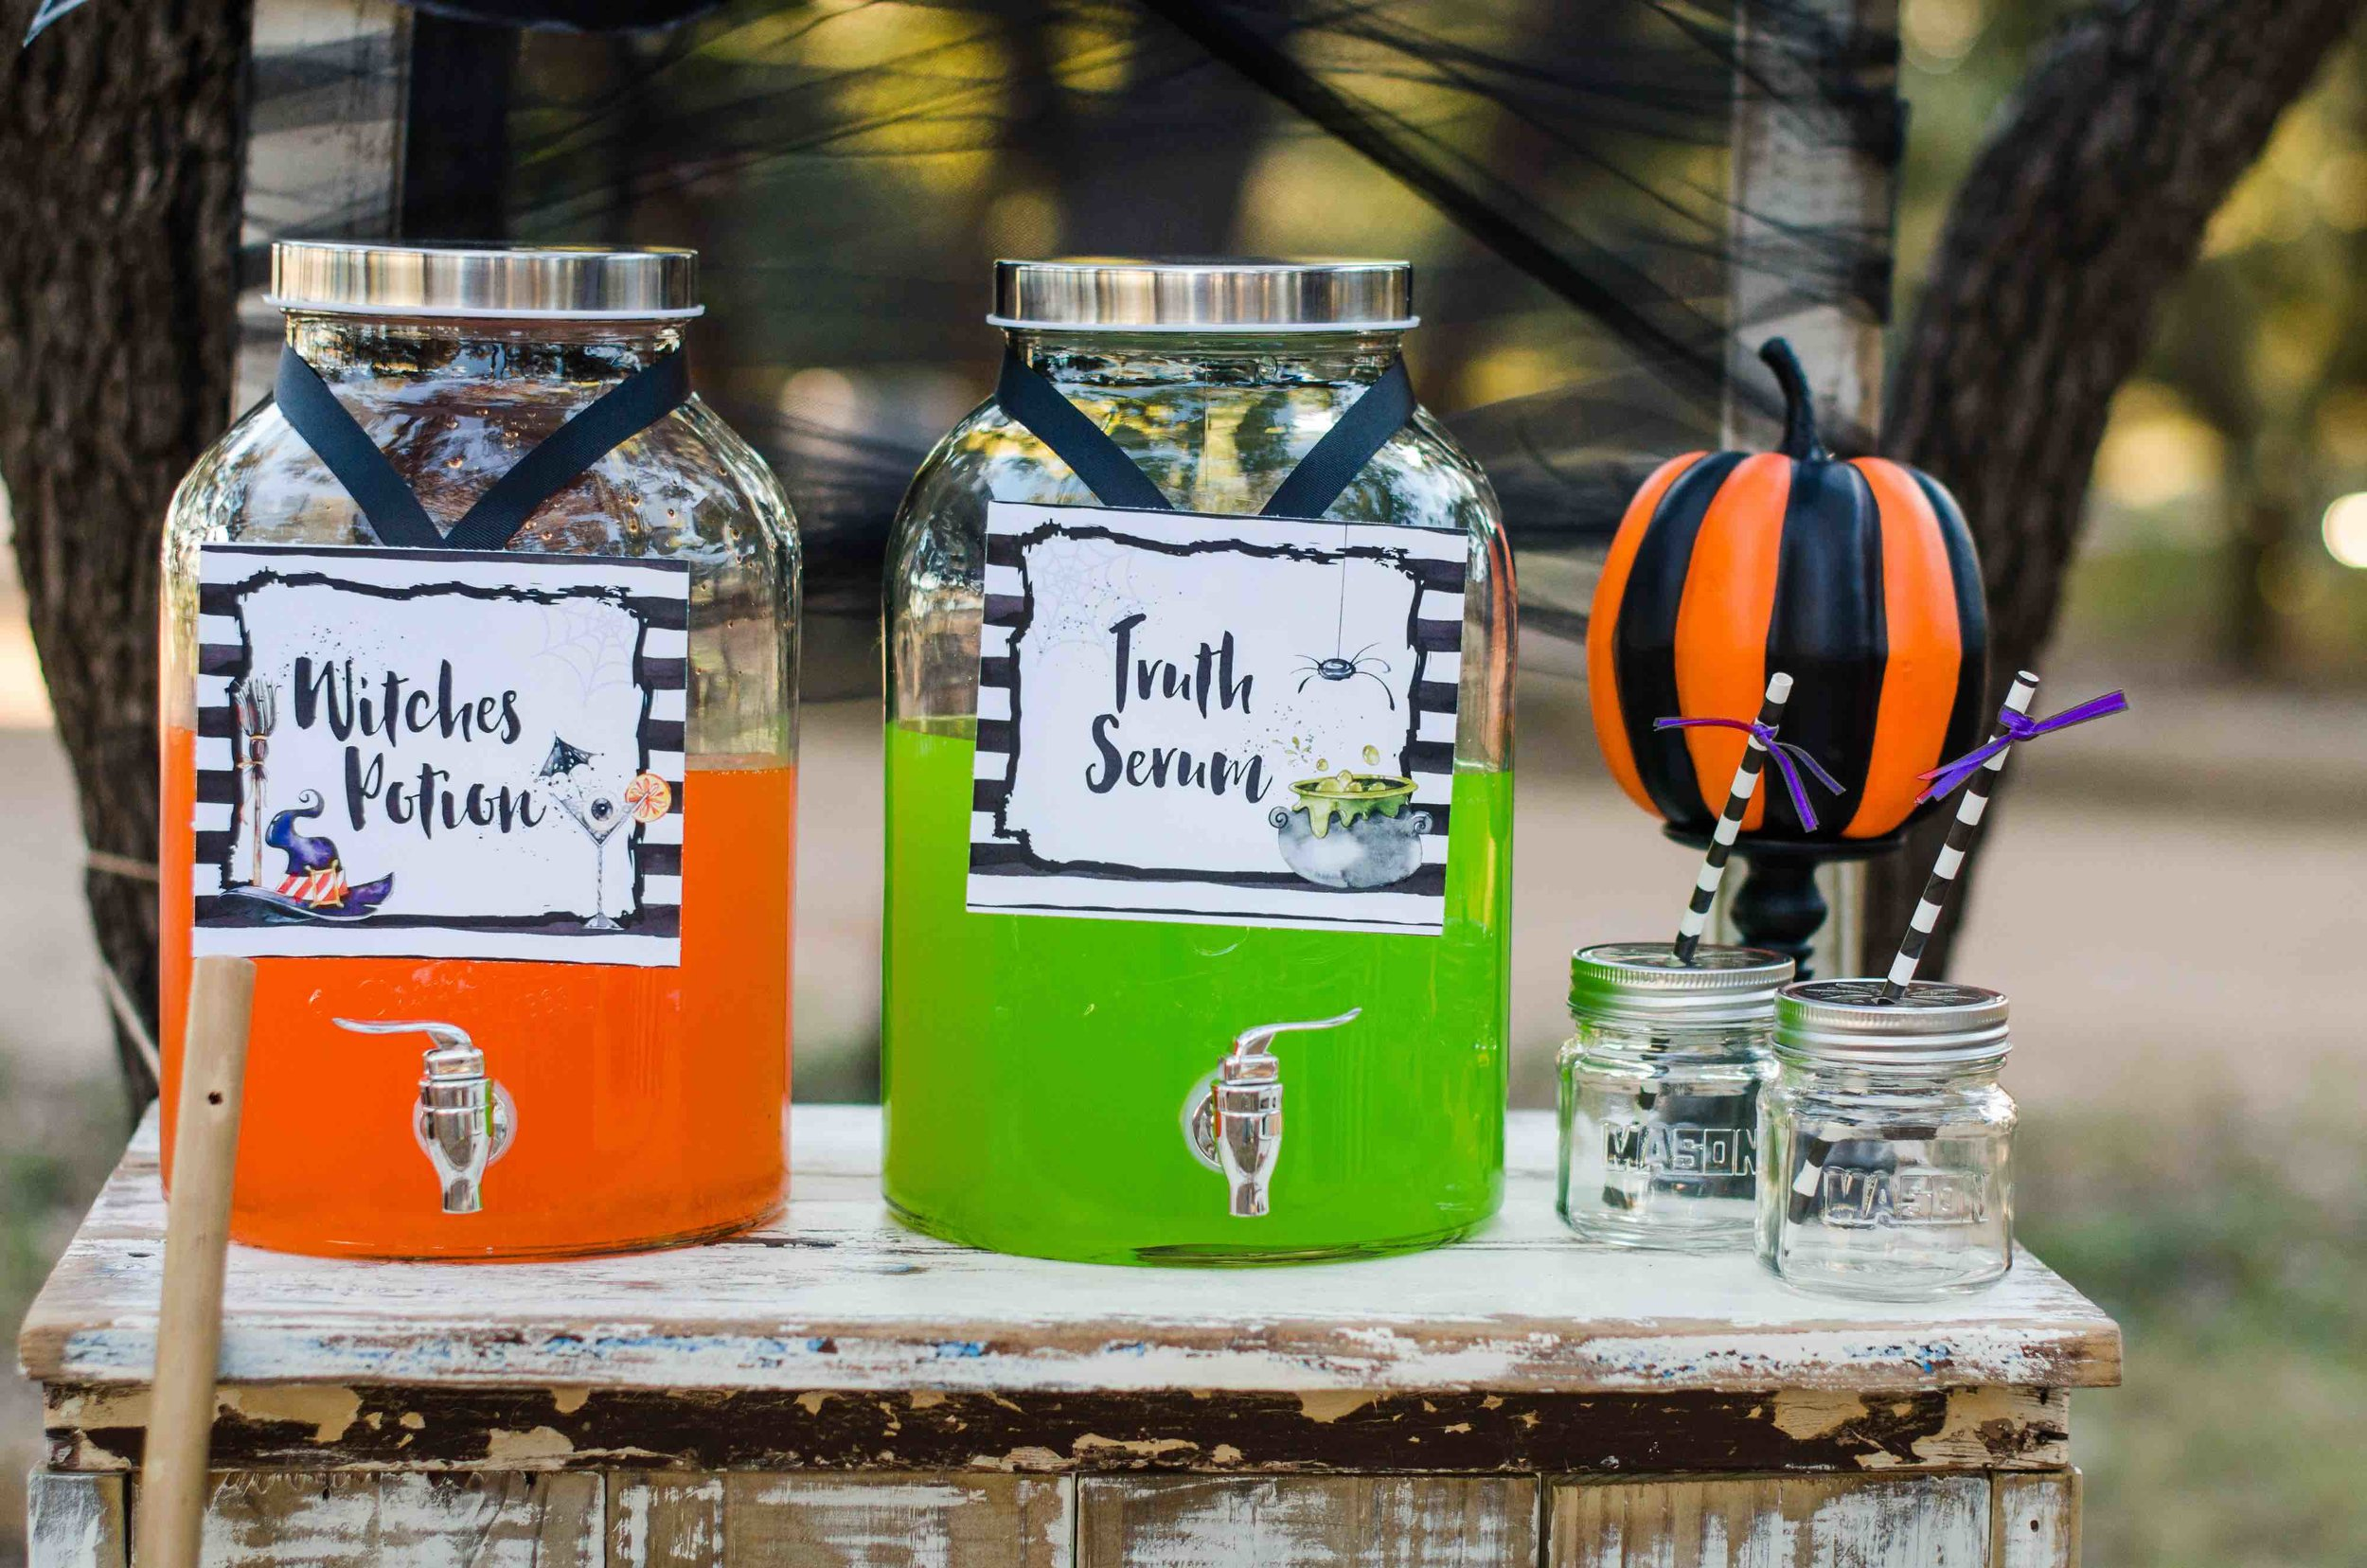 Have fun with your Halloween Party Drink Station - serve brightly colored drinks and have mason jars ready for filling with the Halloween potions. Click to see all the Halloween Party Ideas that you can re-create for your very own Halloween Kids Party. Styled by party stylist Mint Event Design. #halloween #partyideas #partyinspiration #halloweendrinks #drinkstation